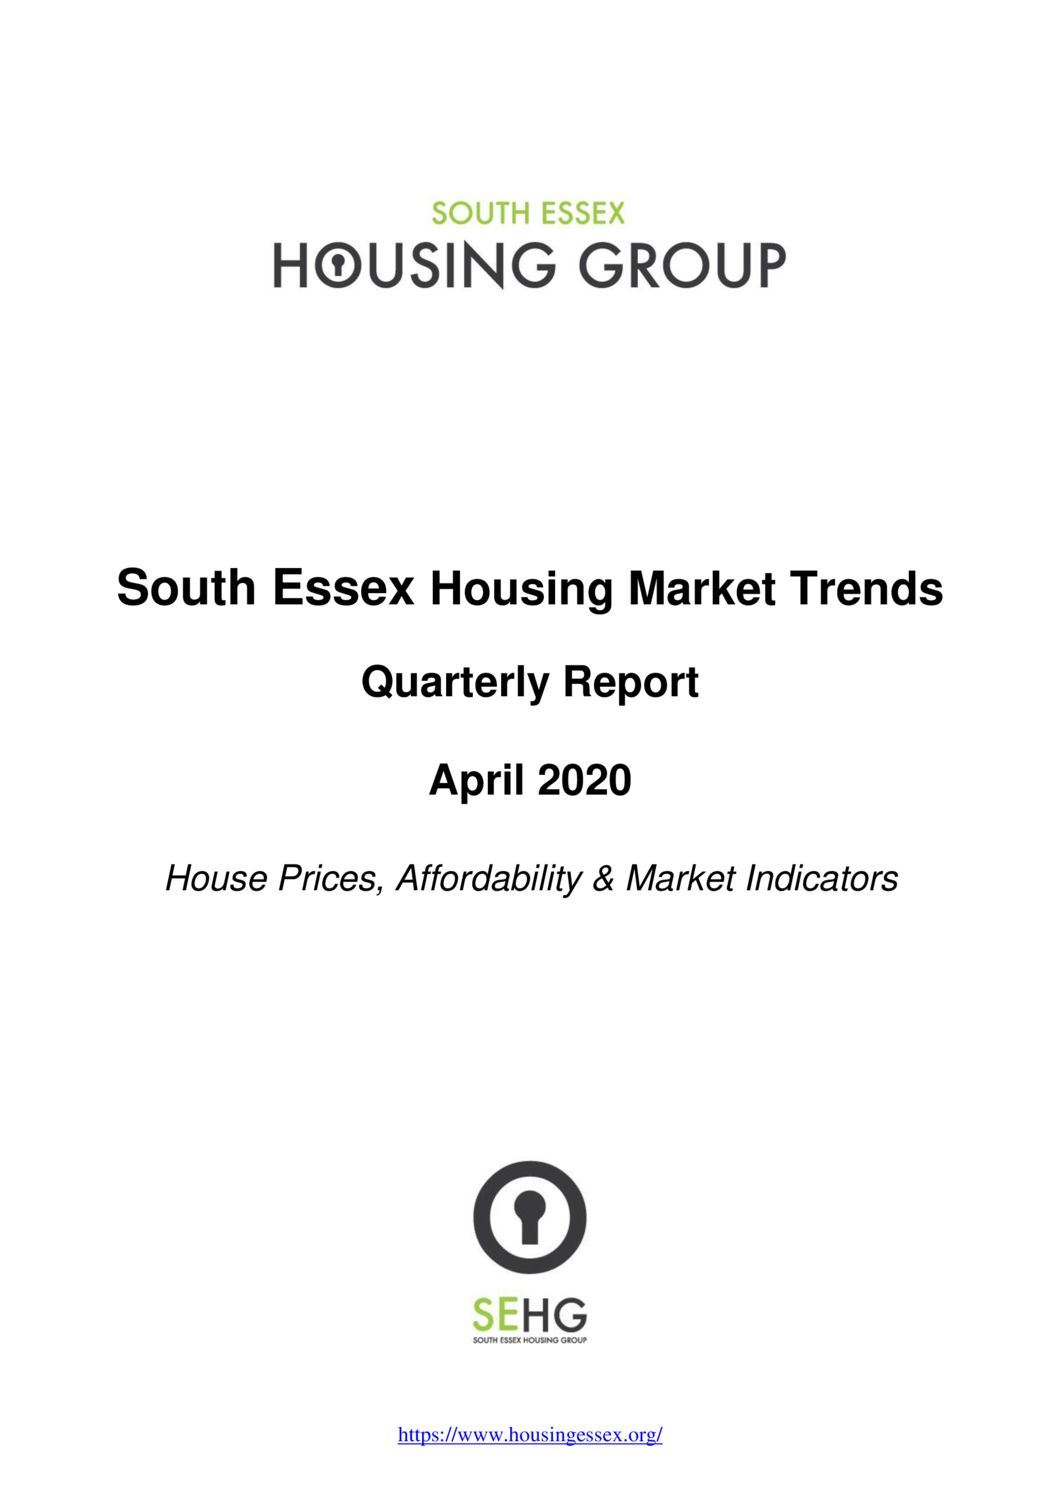 South Essex Housing Market Trends Report April 2020